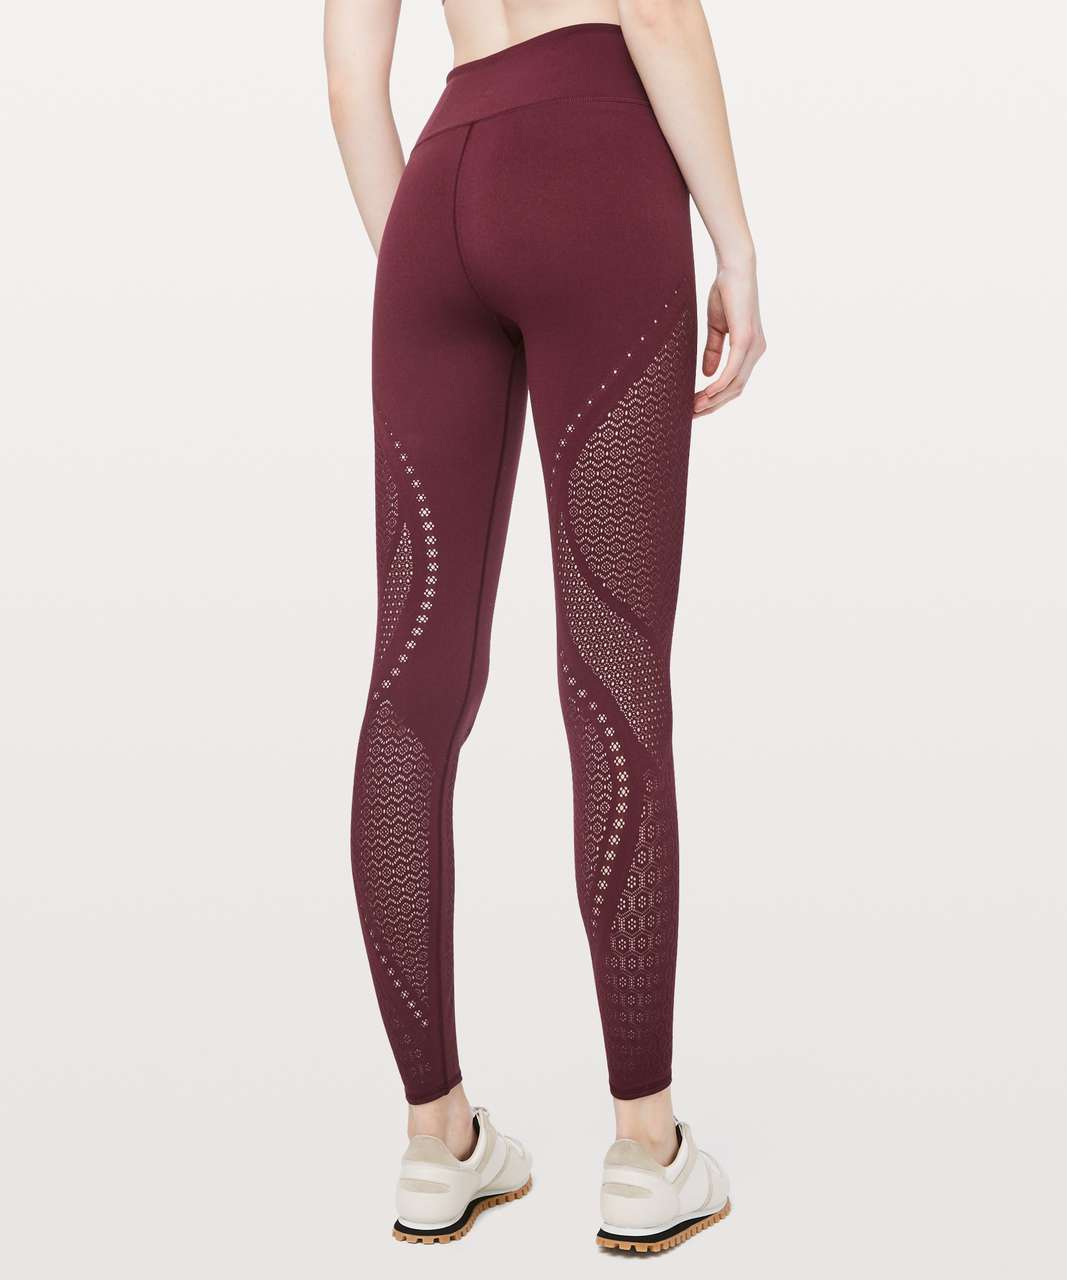 Lululemon Reveal Tight *Mindful Motion - Deep Ruby